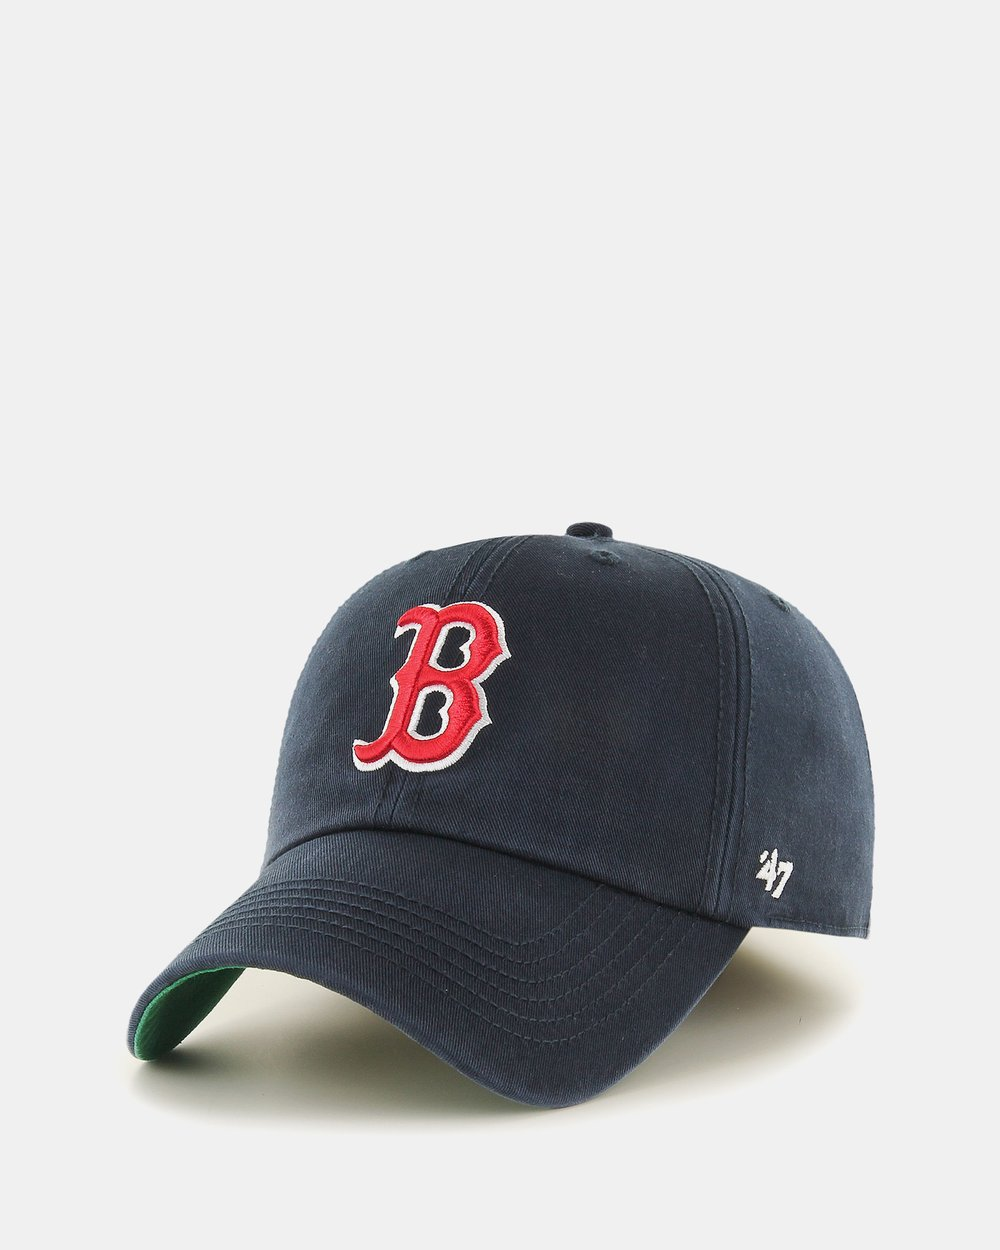 eb8380125 Boston Red Sox '47 FRANCHISE by 47 Online | THE ICONIC | Australia